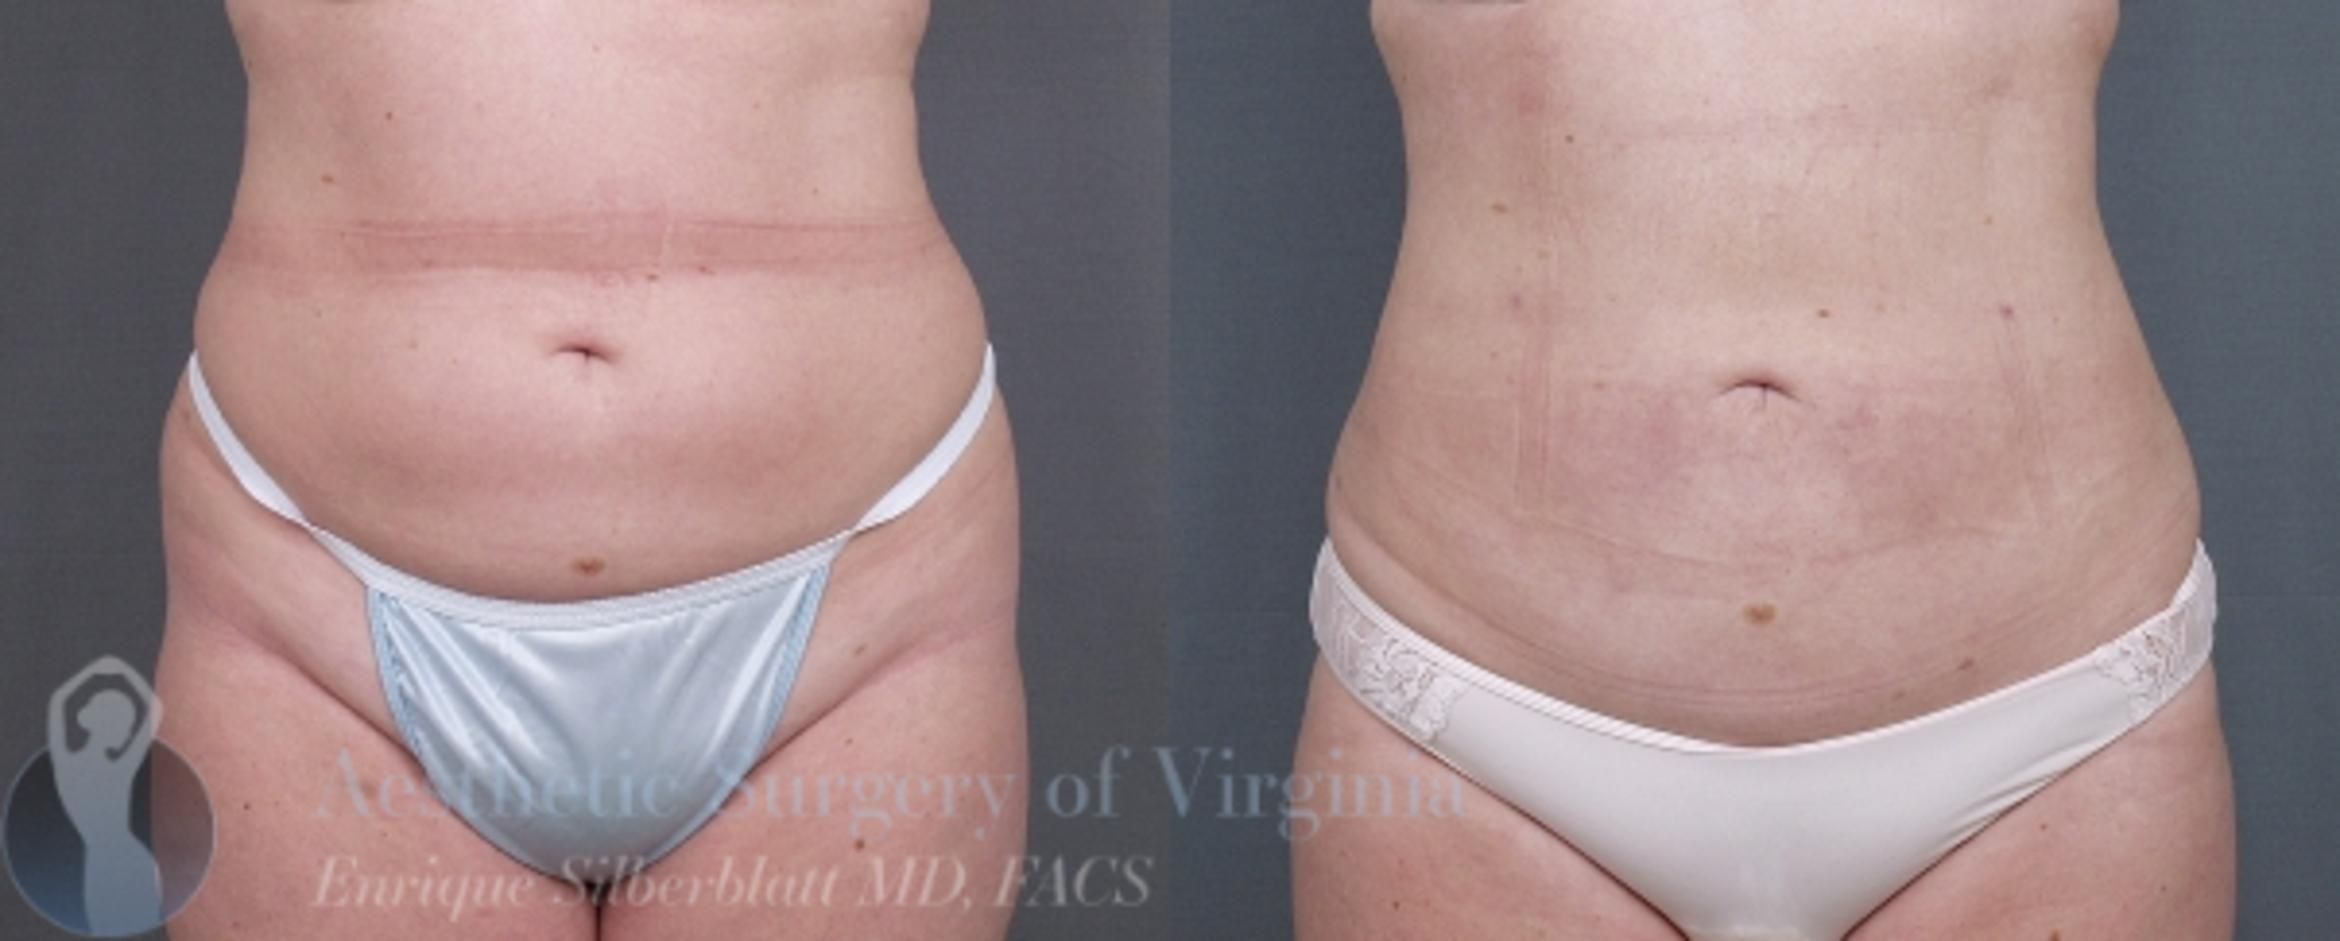 Liposuction In Roanoke Va Aesthetic Surgery Of Virginia